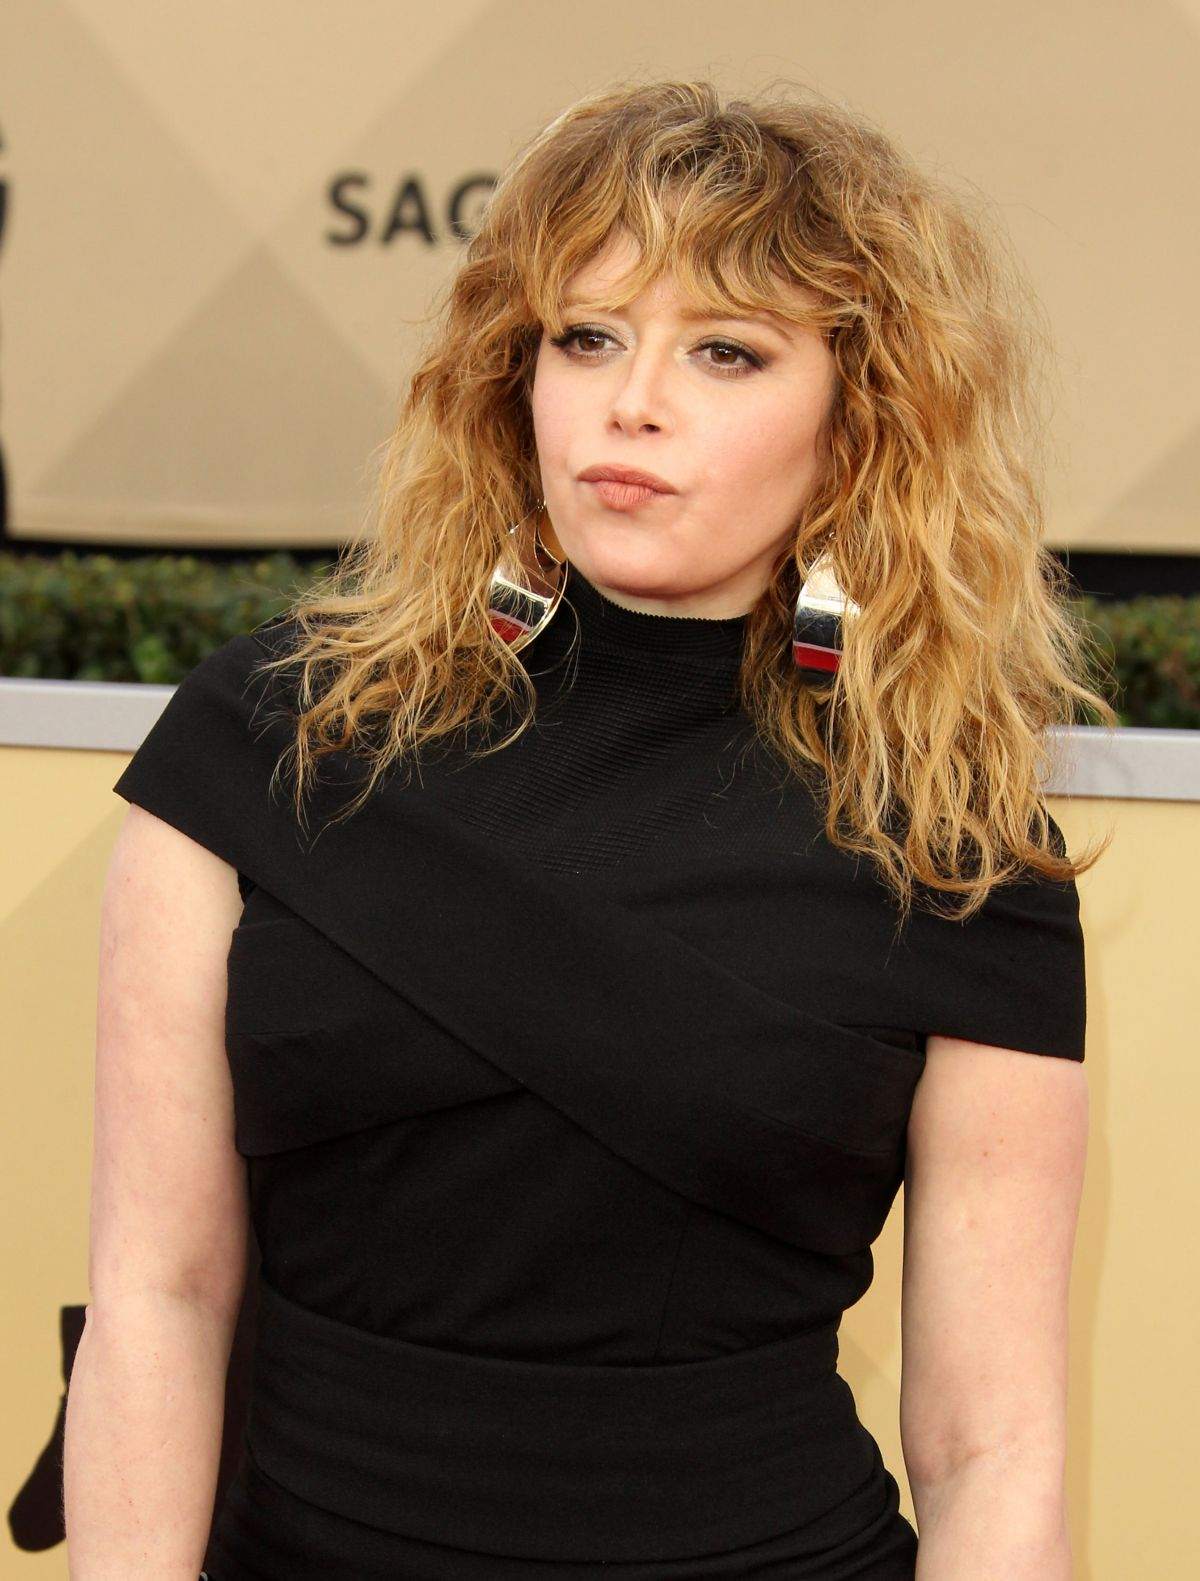 Natasha Lyonne nude (39 foto and video), Tits, Fappening, Feet, braless 2017